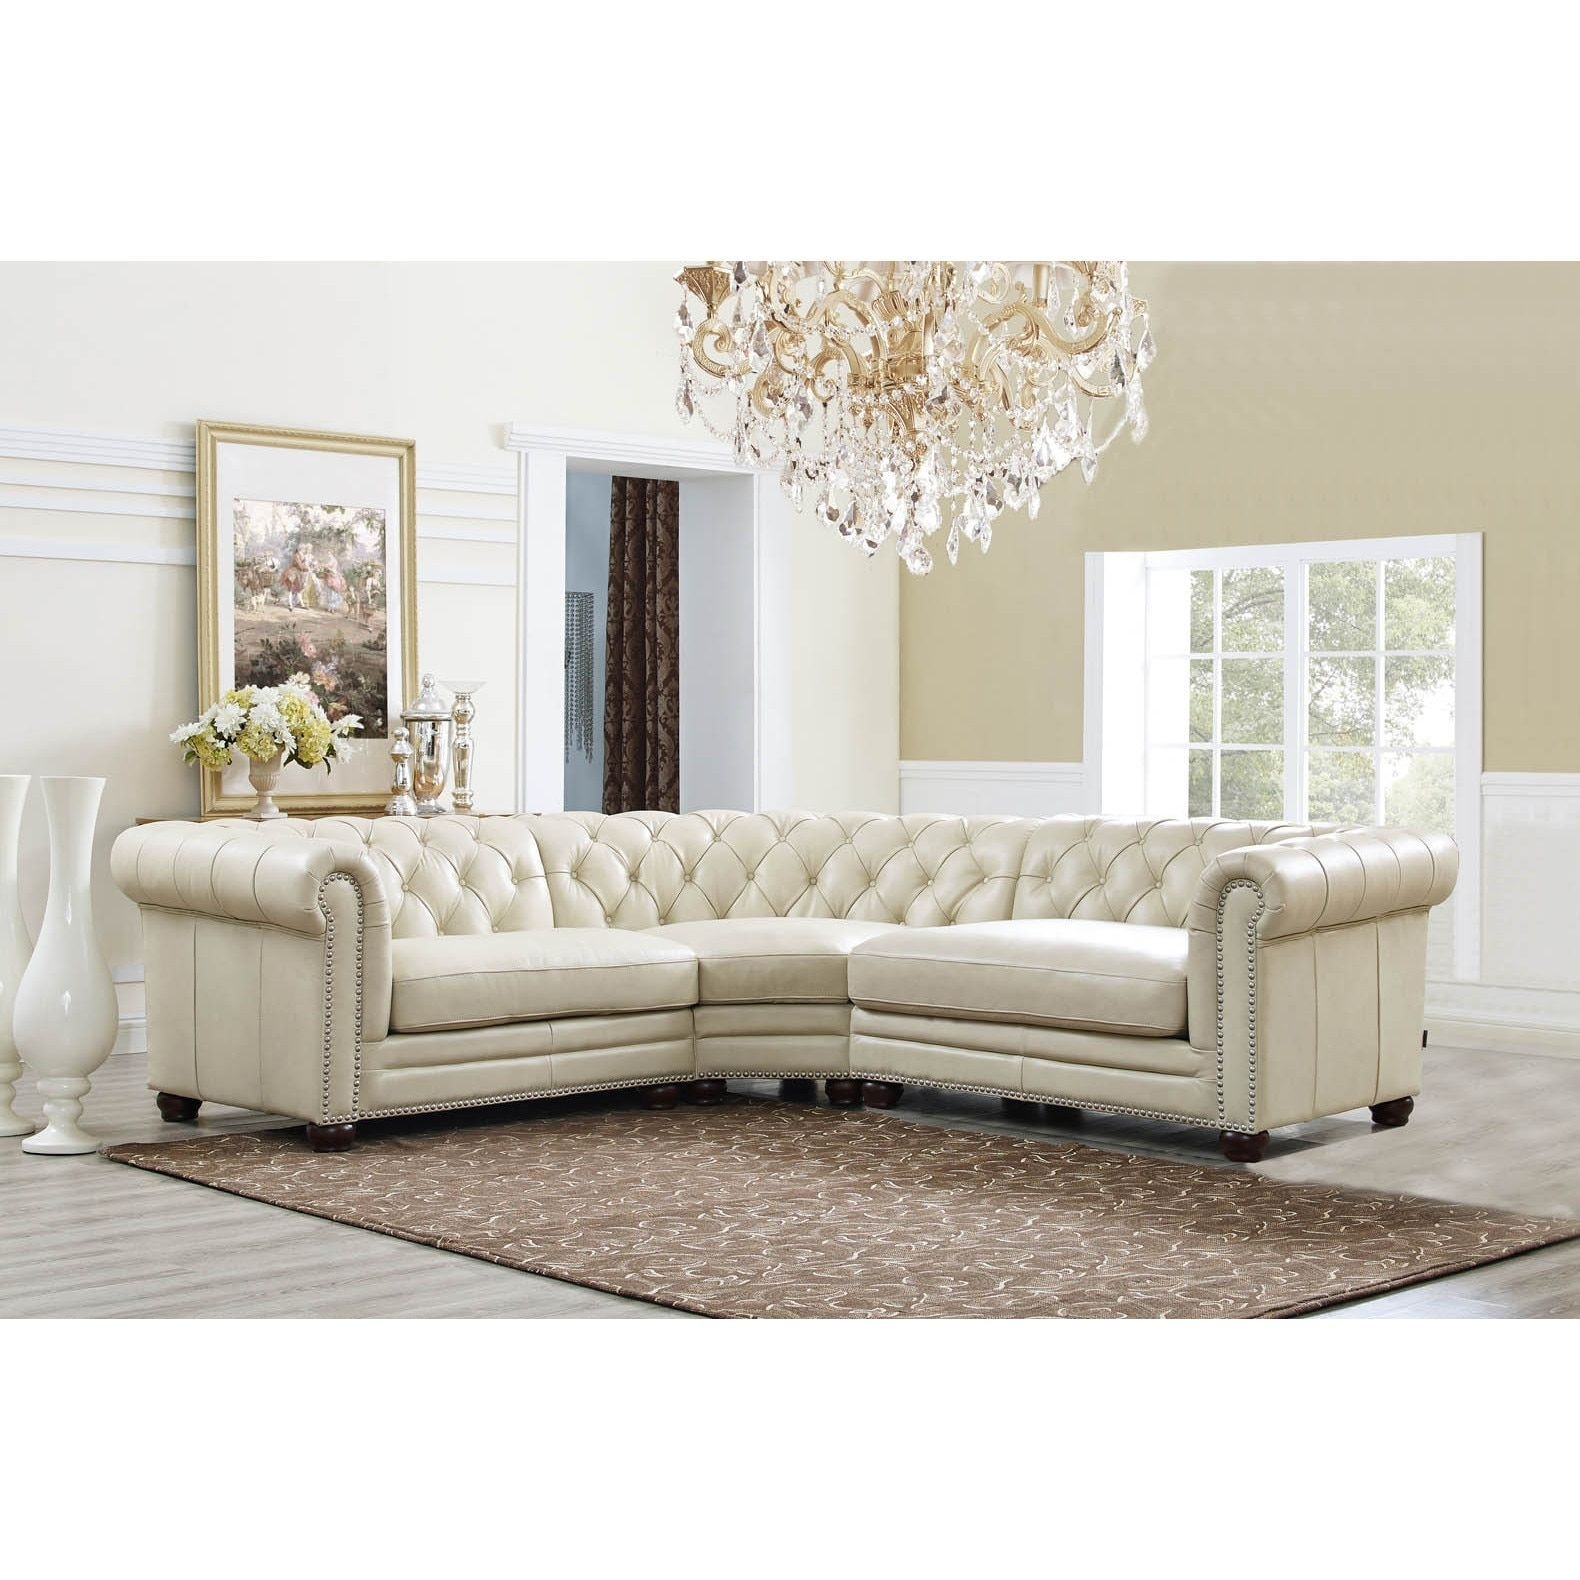 Hydelineamax Nicholson Top Grain Leather Button Tufted Nailhead inside Turdur 3 Piece Sectionals With Raf Loveseat (Image 9 of 30)